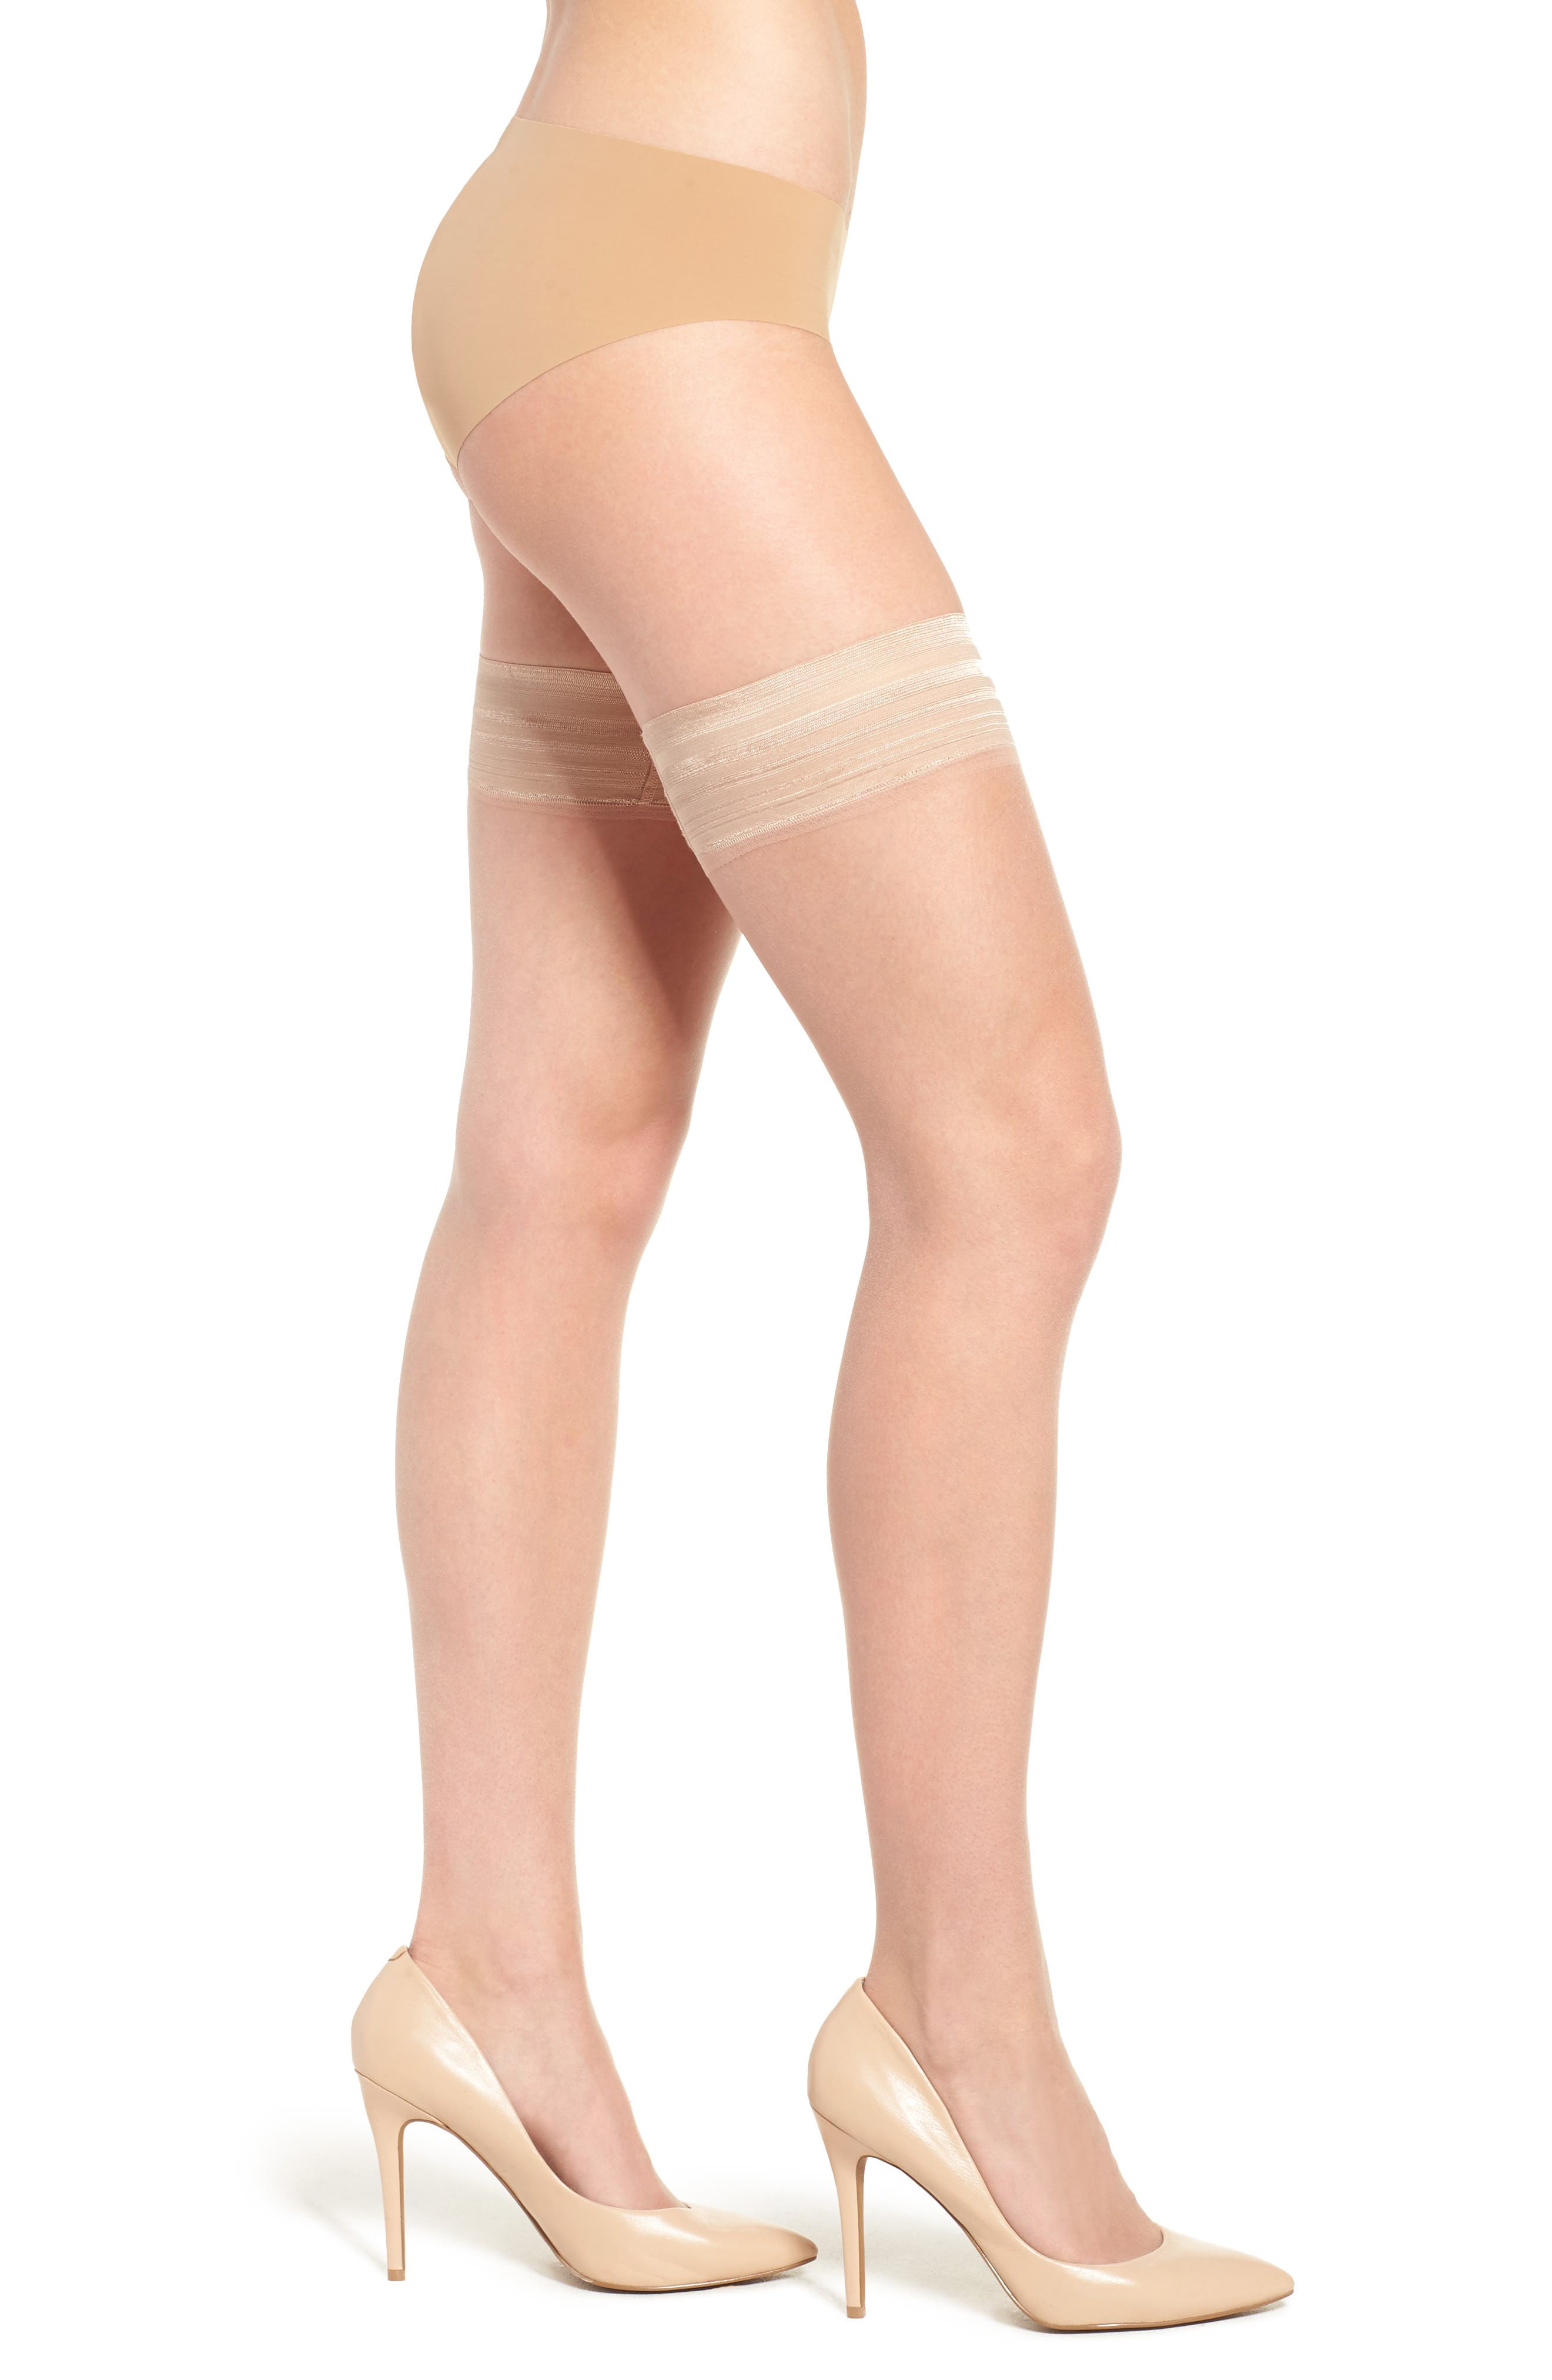 Donna Karan Beyond The Nudes Stay-Up Stockings,                             Main thumbnail 4, color,